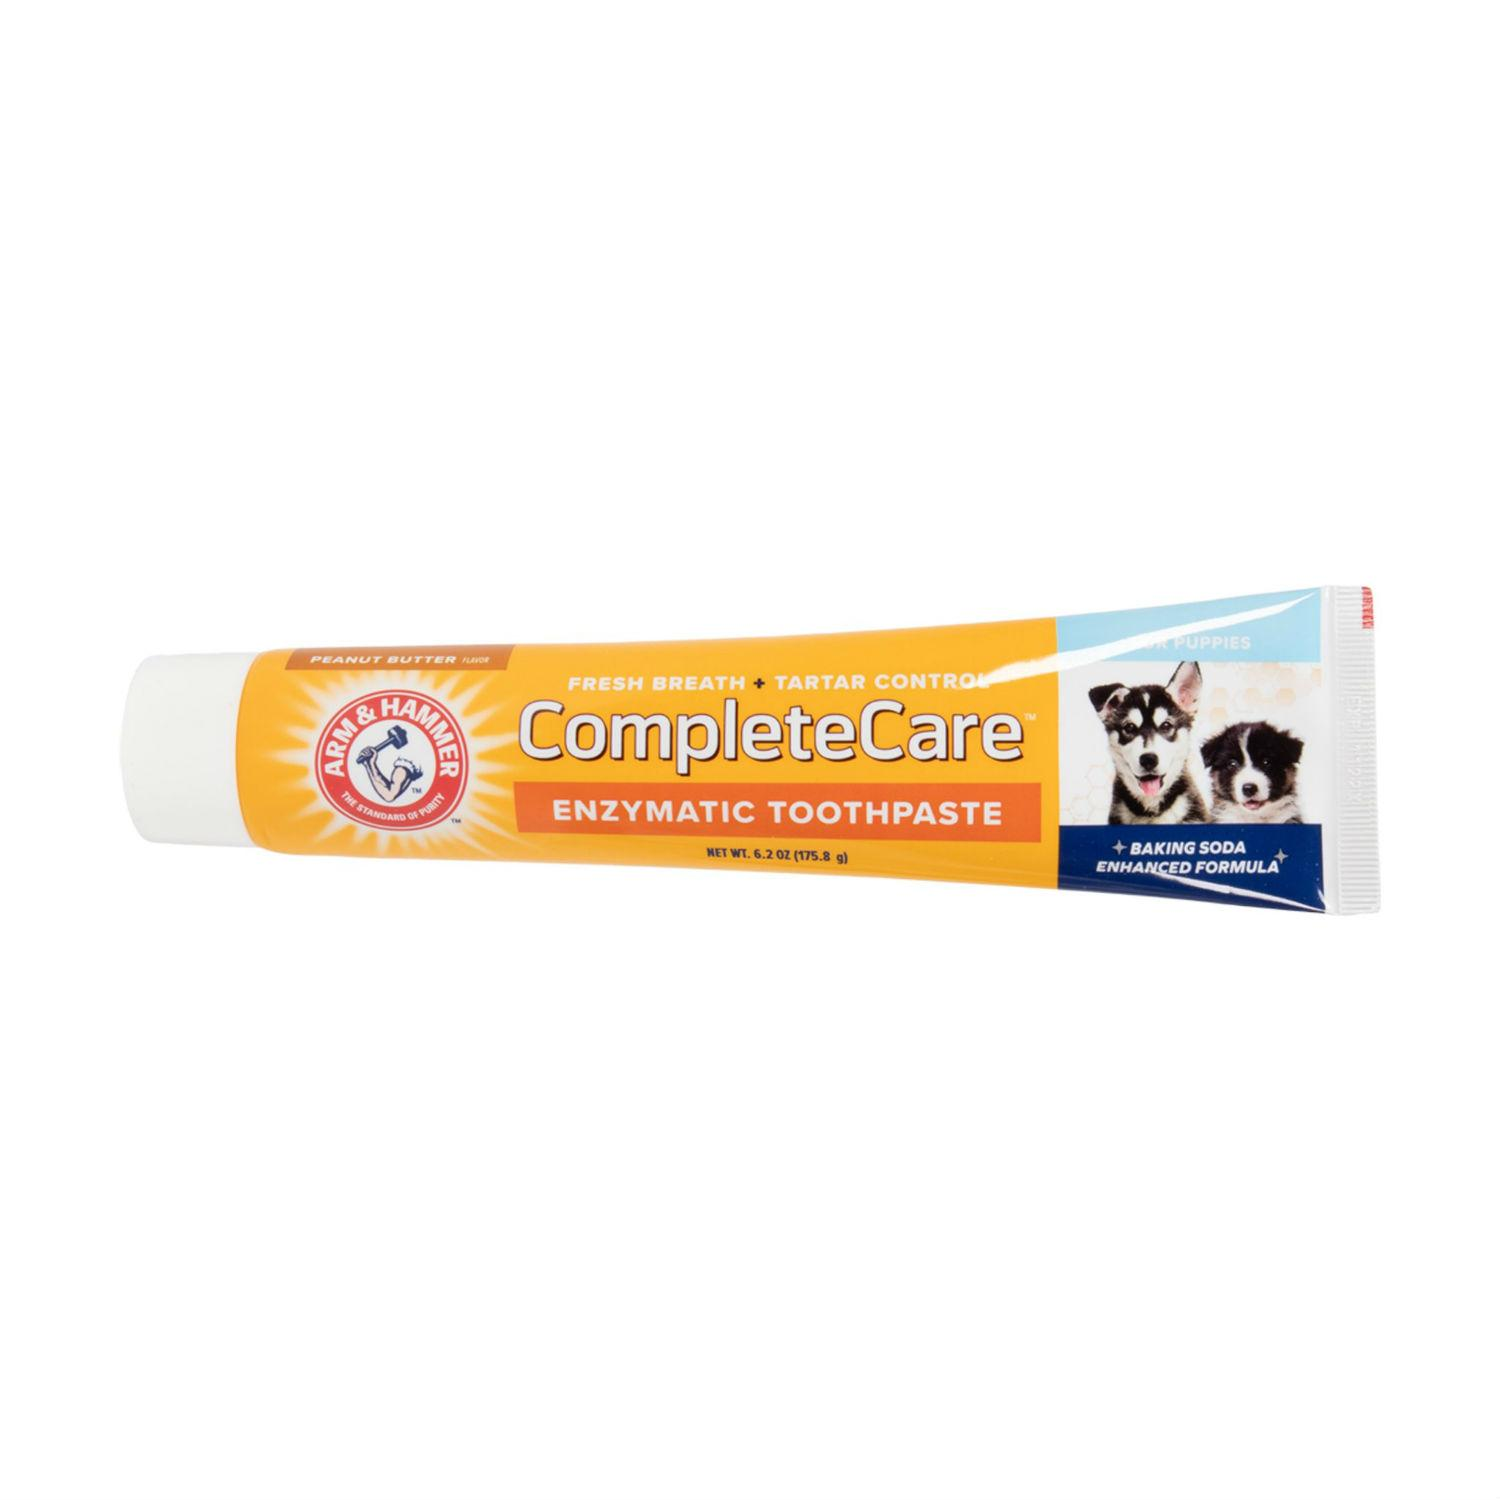 Arm & Hammer Dental Complete Care Puppy Toothpaste - Peanut Butter